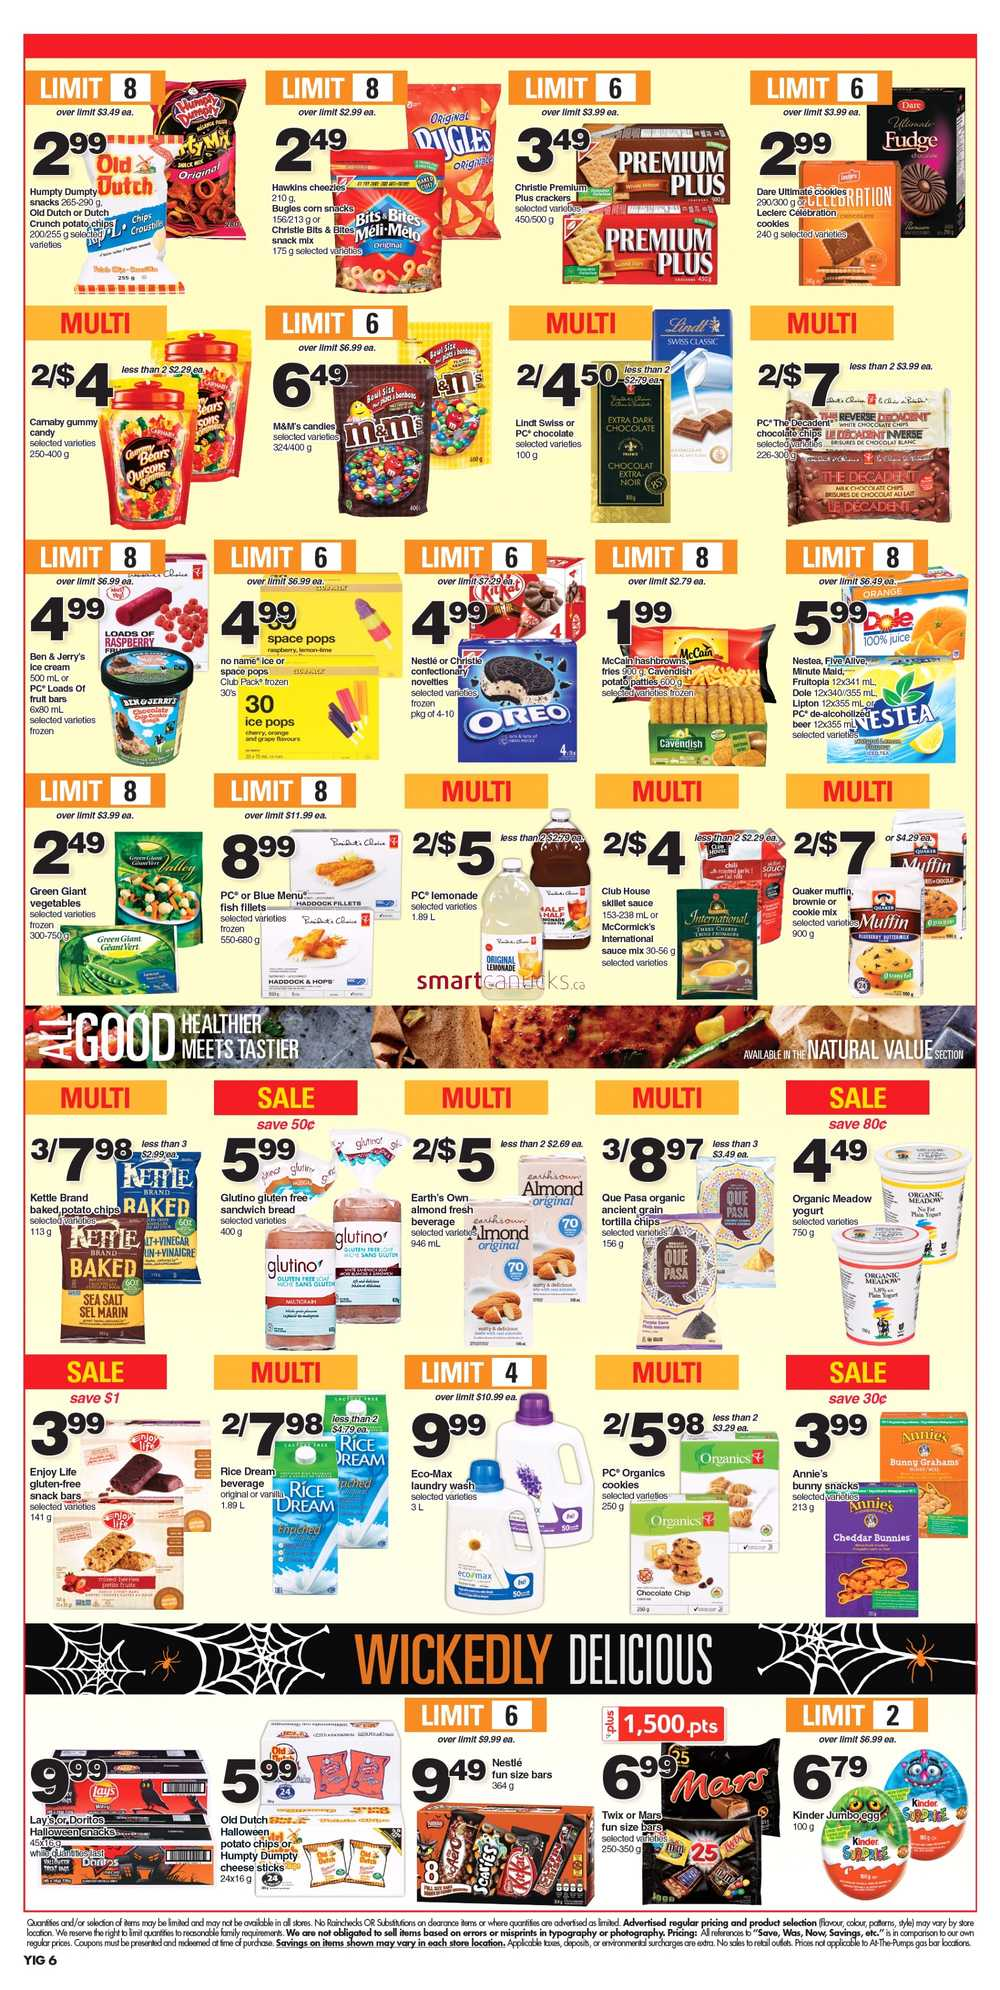 Add coupons to store card. Go shopping. Swipe card at checkout. Instant savings. Add coupons to your loyalty card and save instantly at checkout.